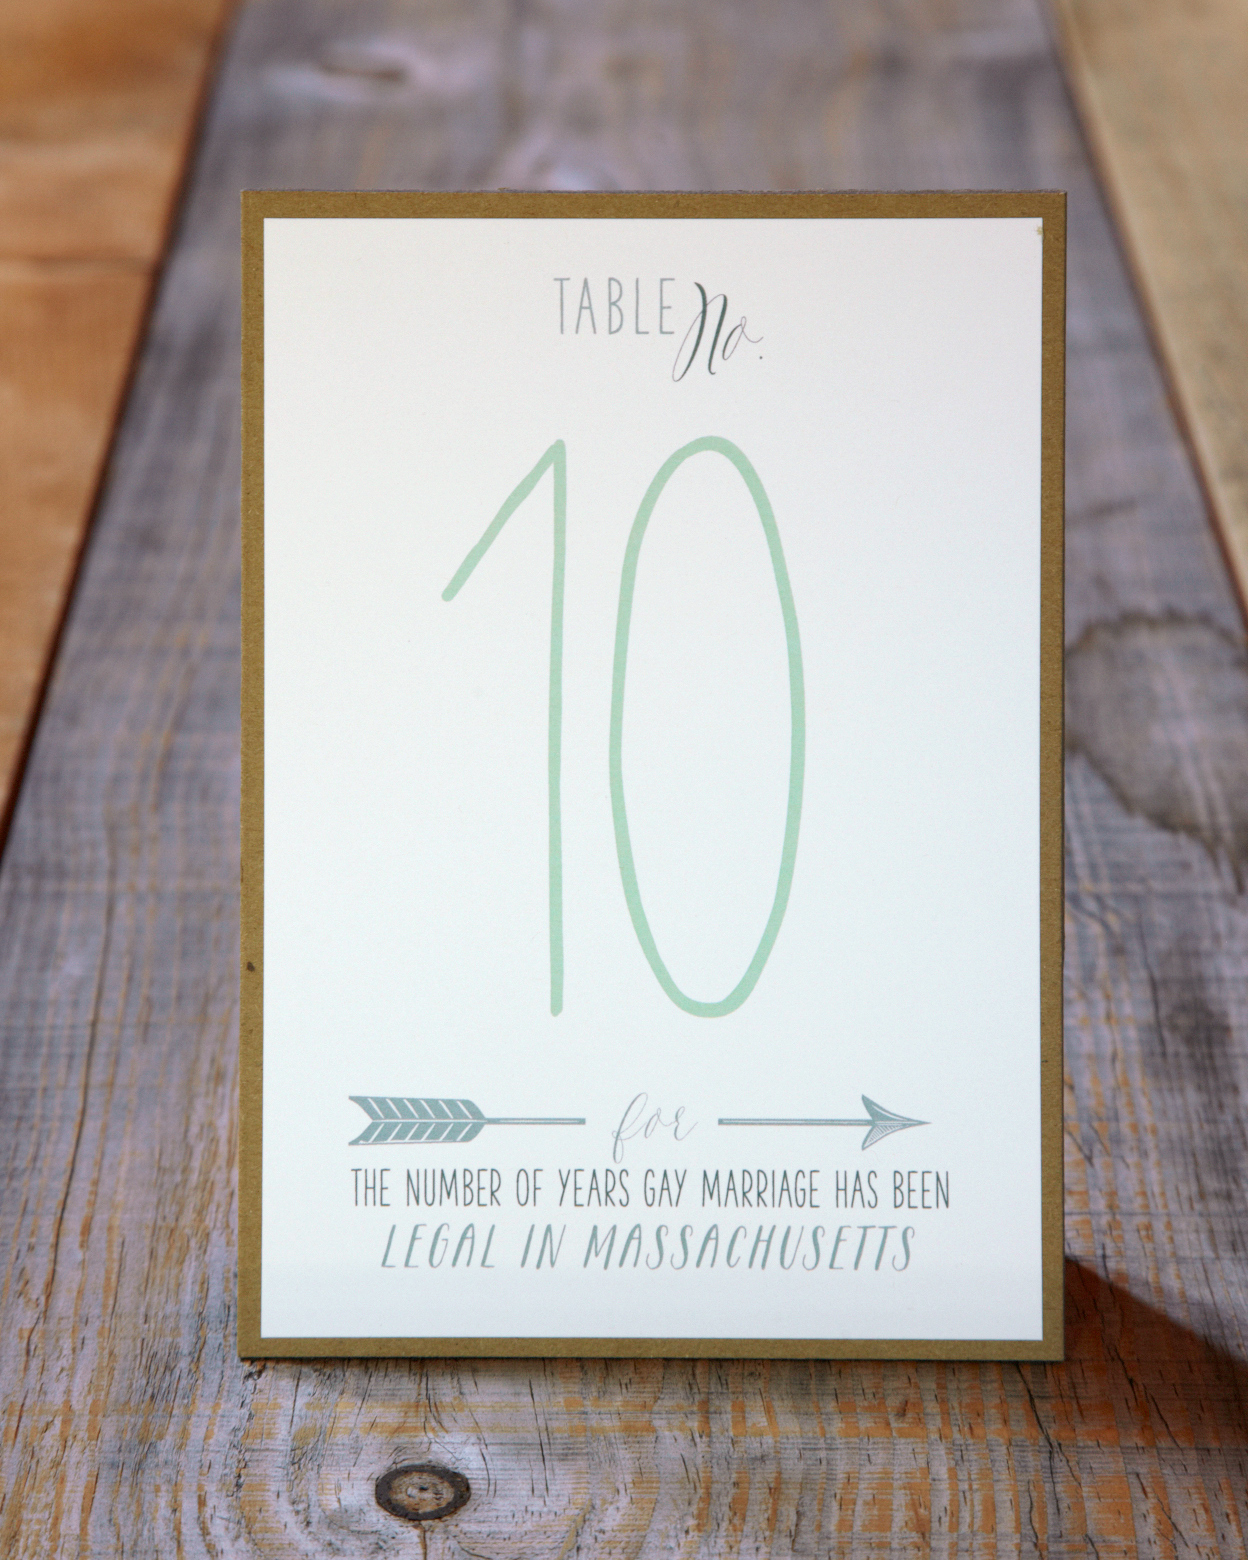 table-number-10-296-d111381.jpg